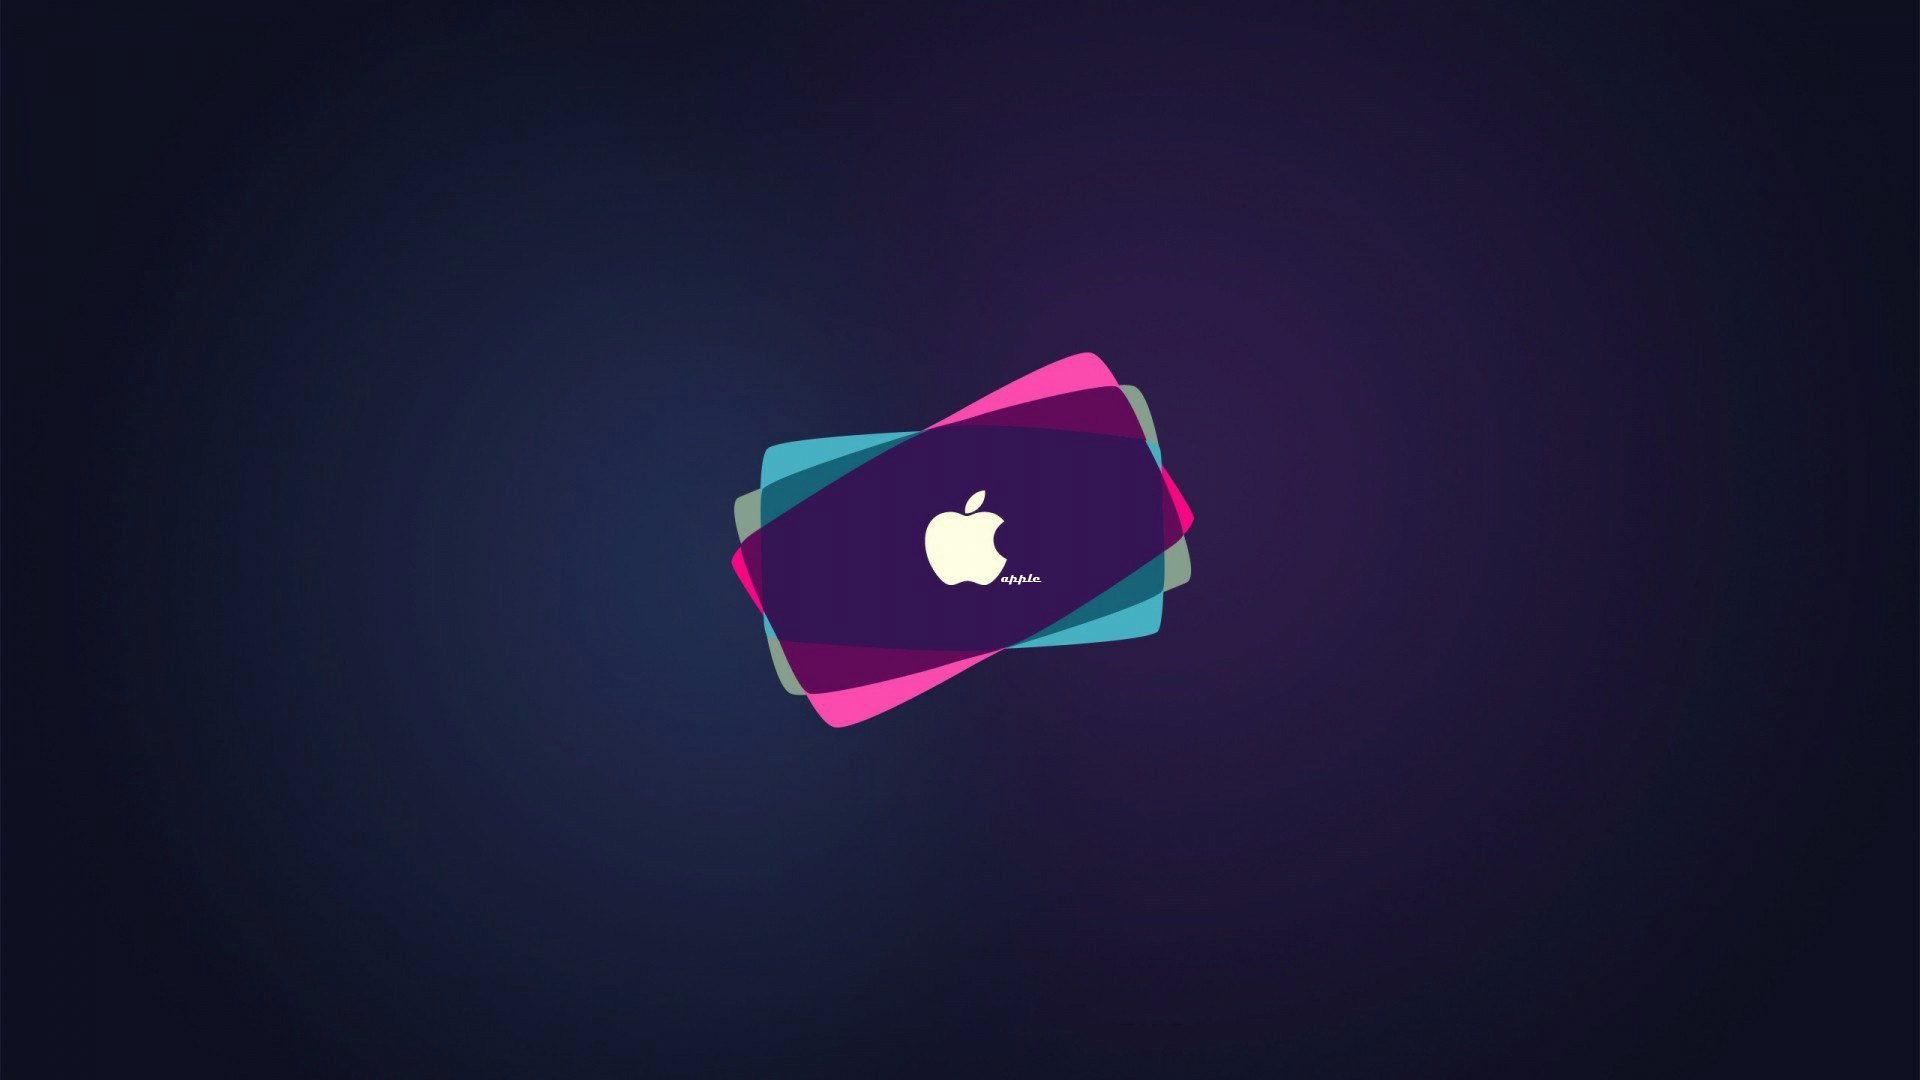 Download image Mac Os X Wallpaper Images Center PC Android iPhone 1920x1080